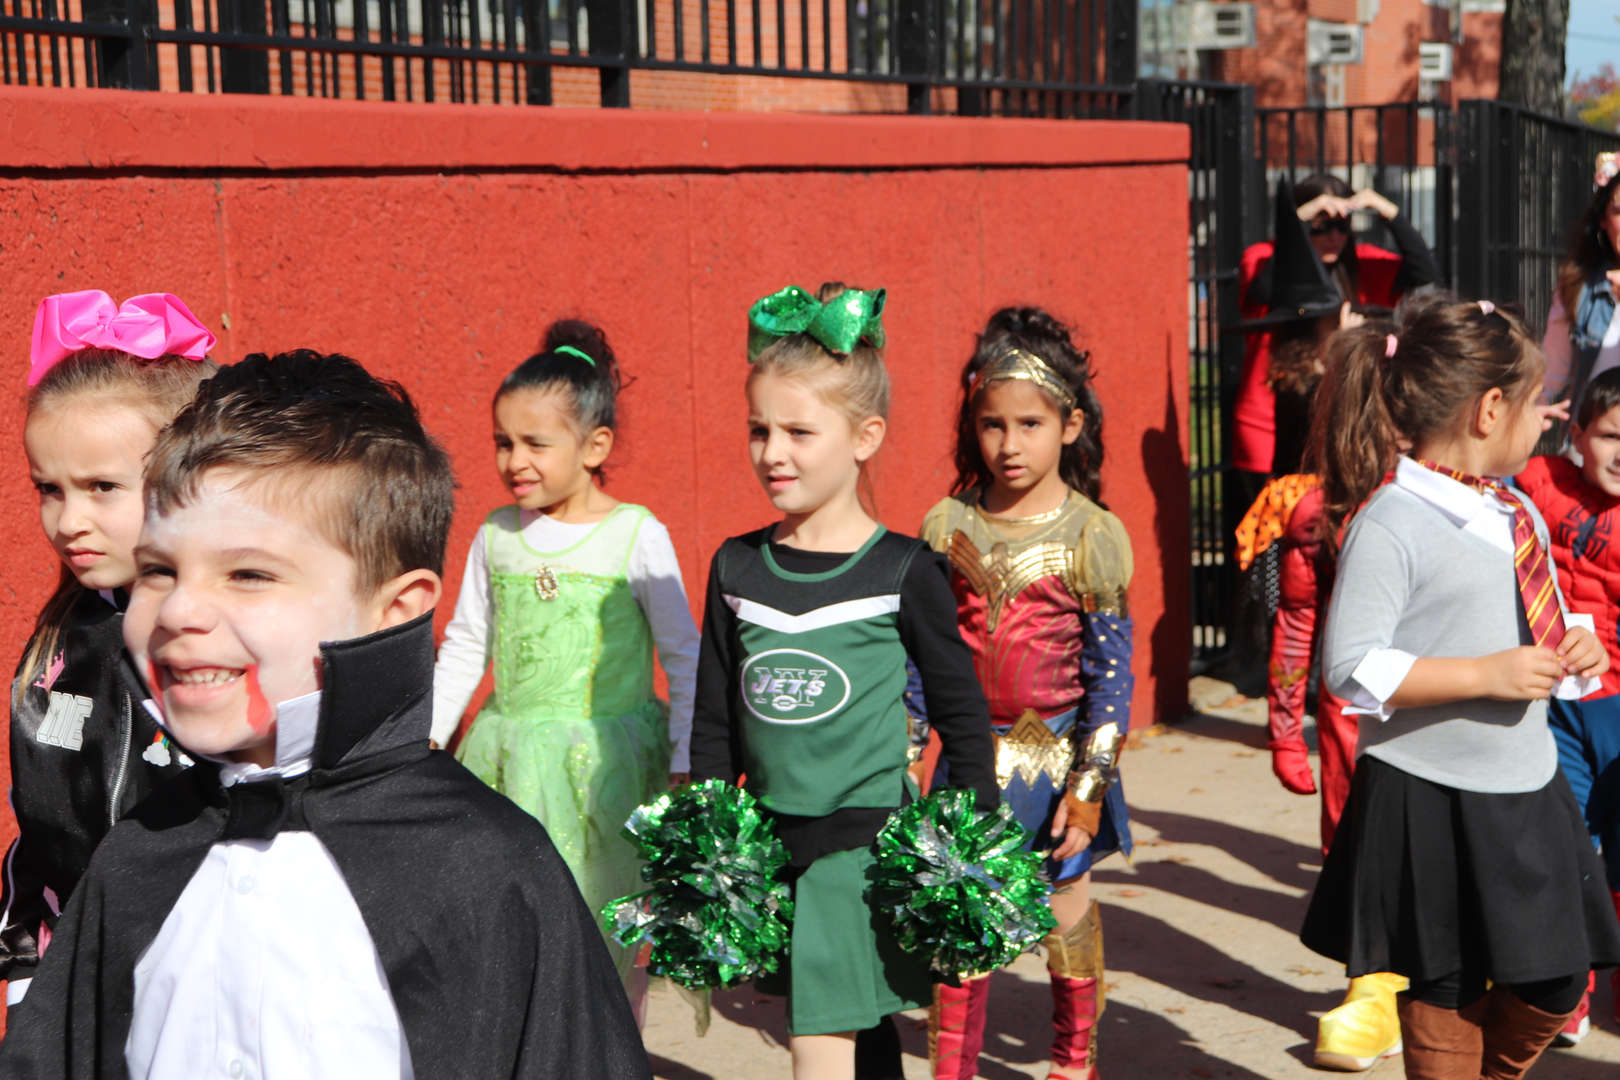 students moving along in costume